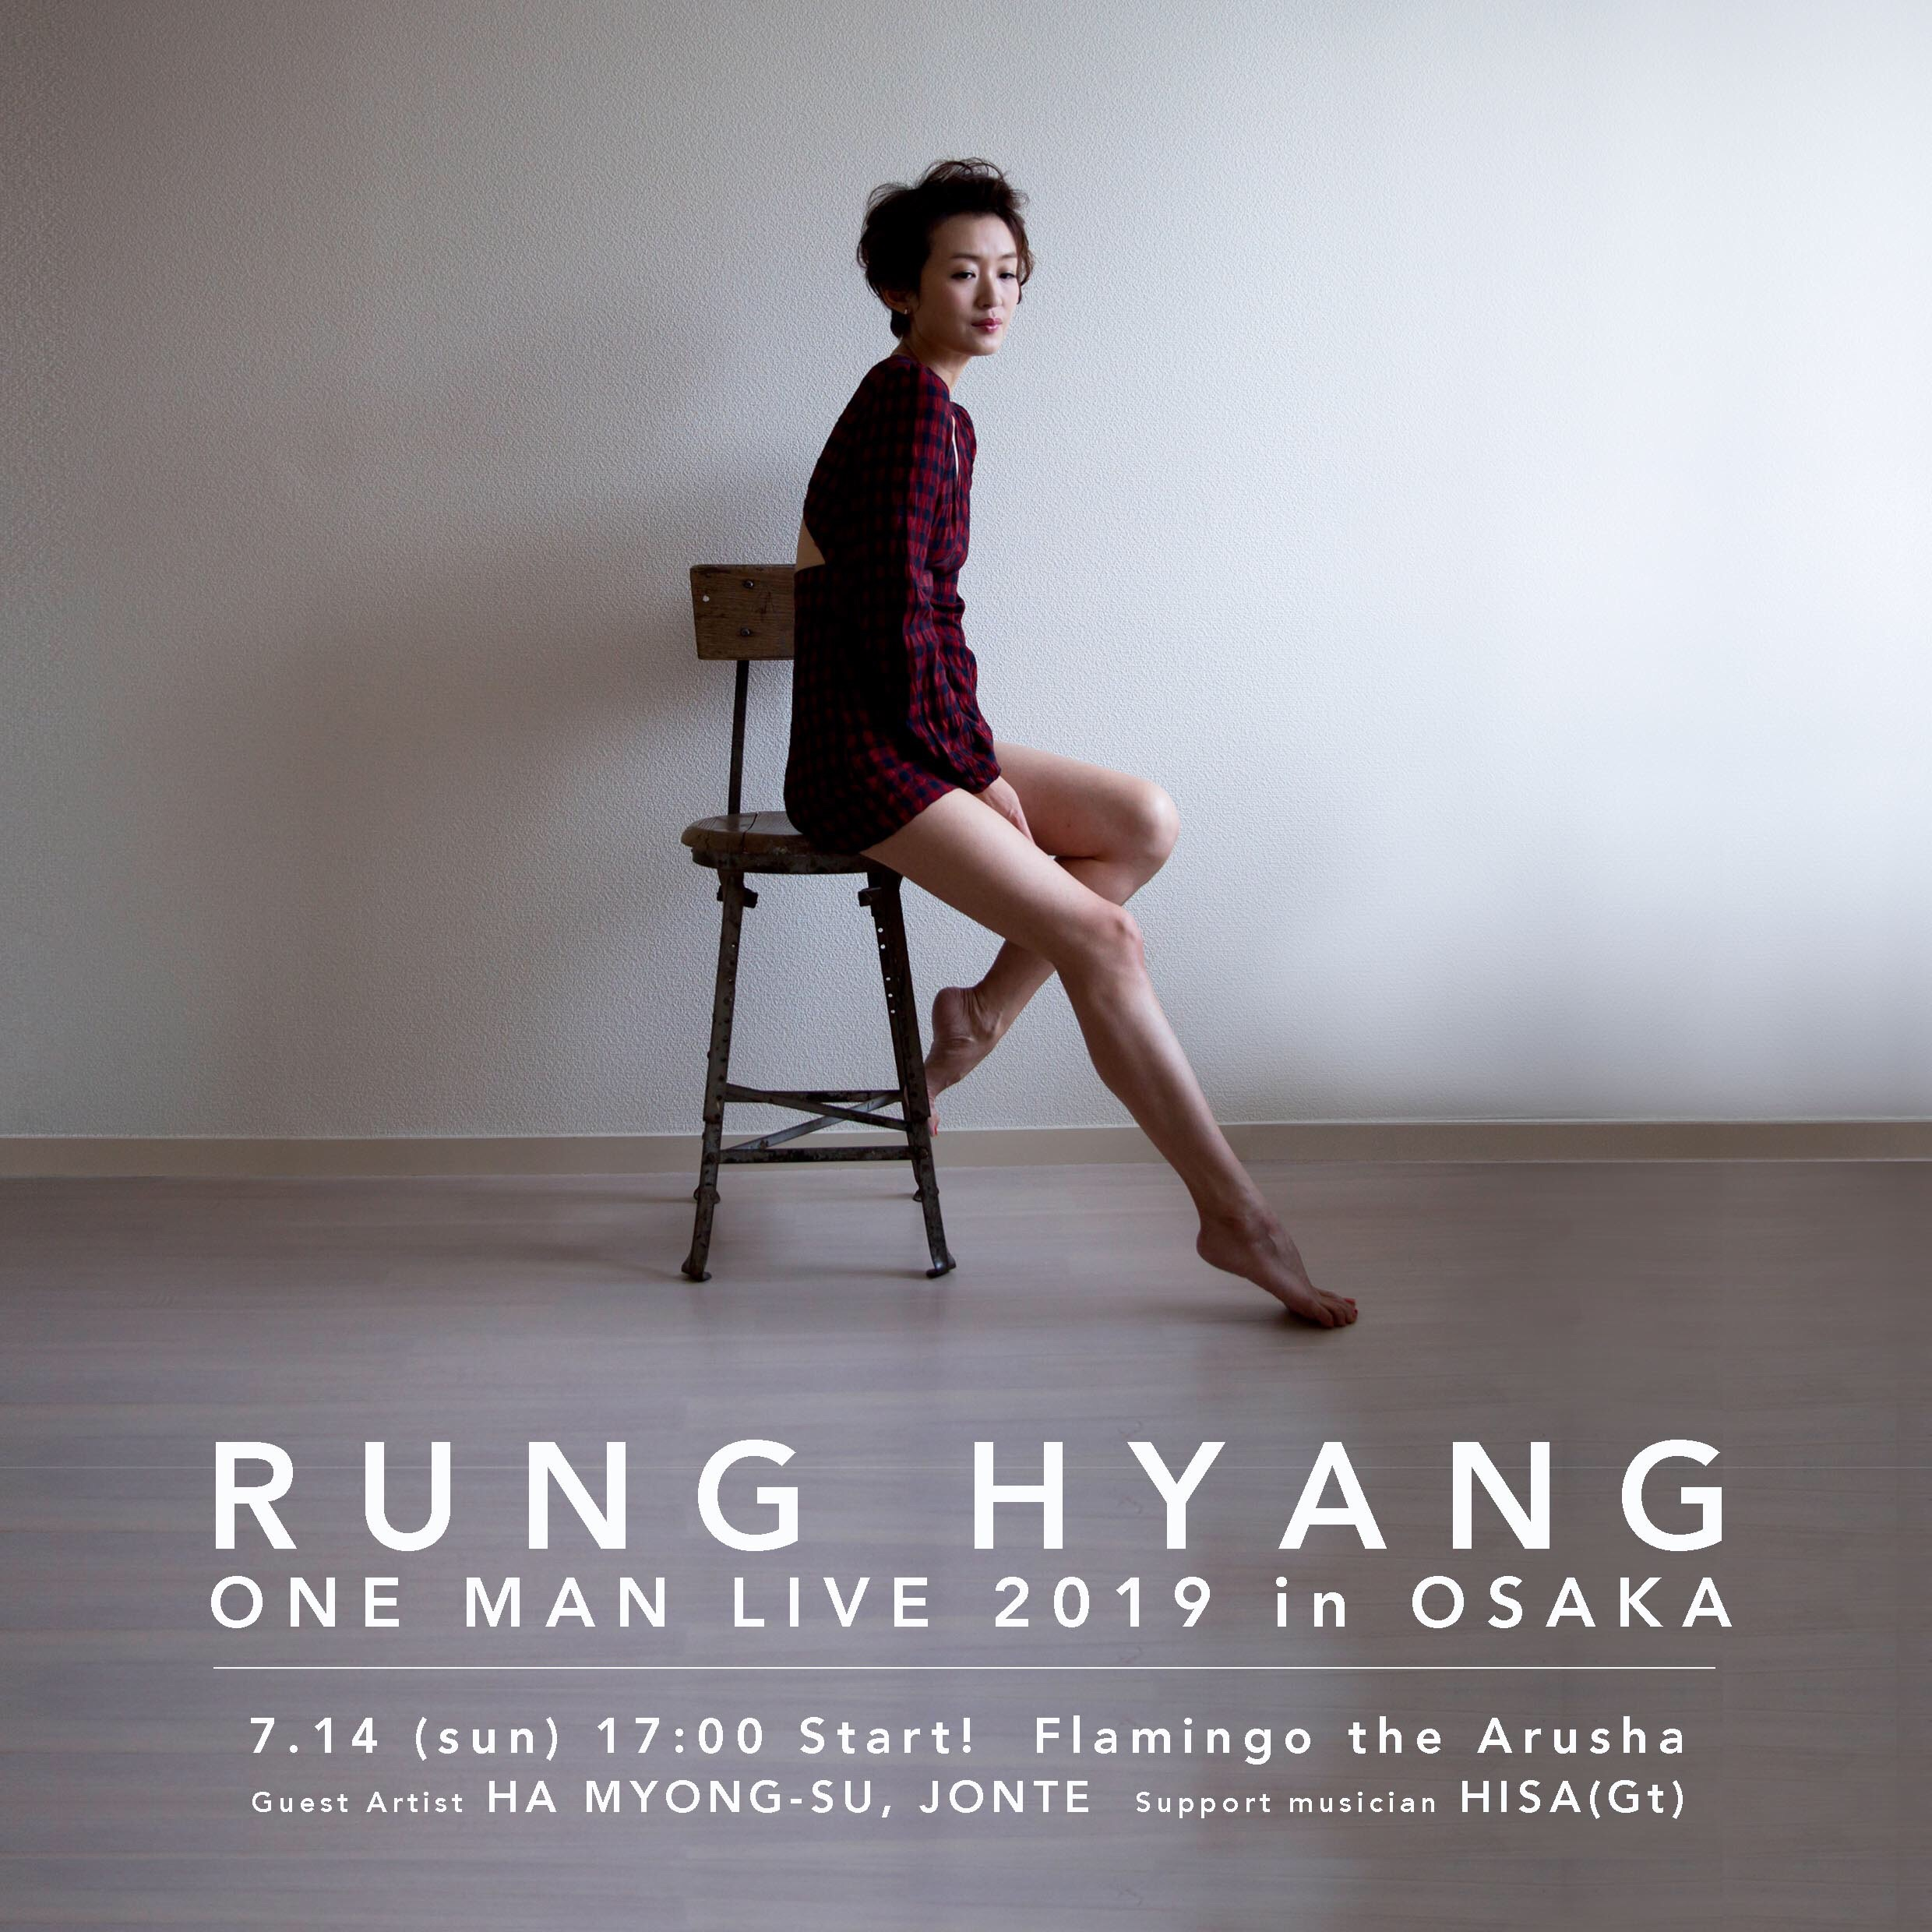 RUNG HYANG ONE MAN LIVE 2019 in OSAKA